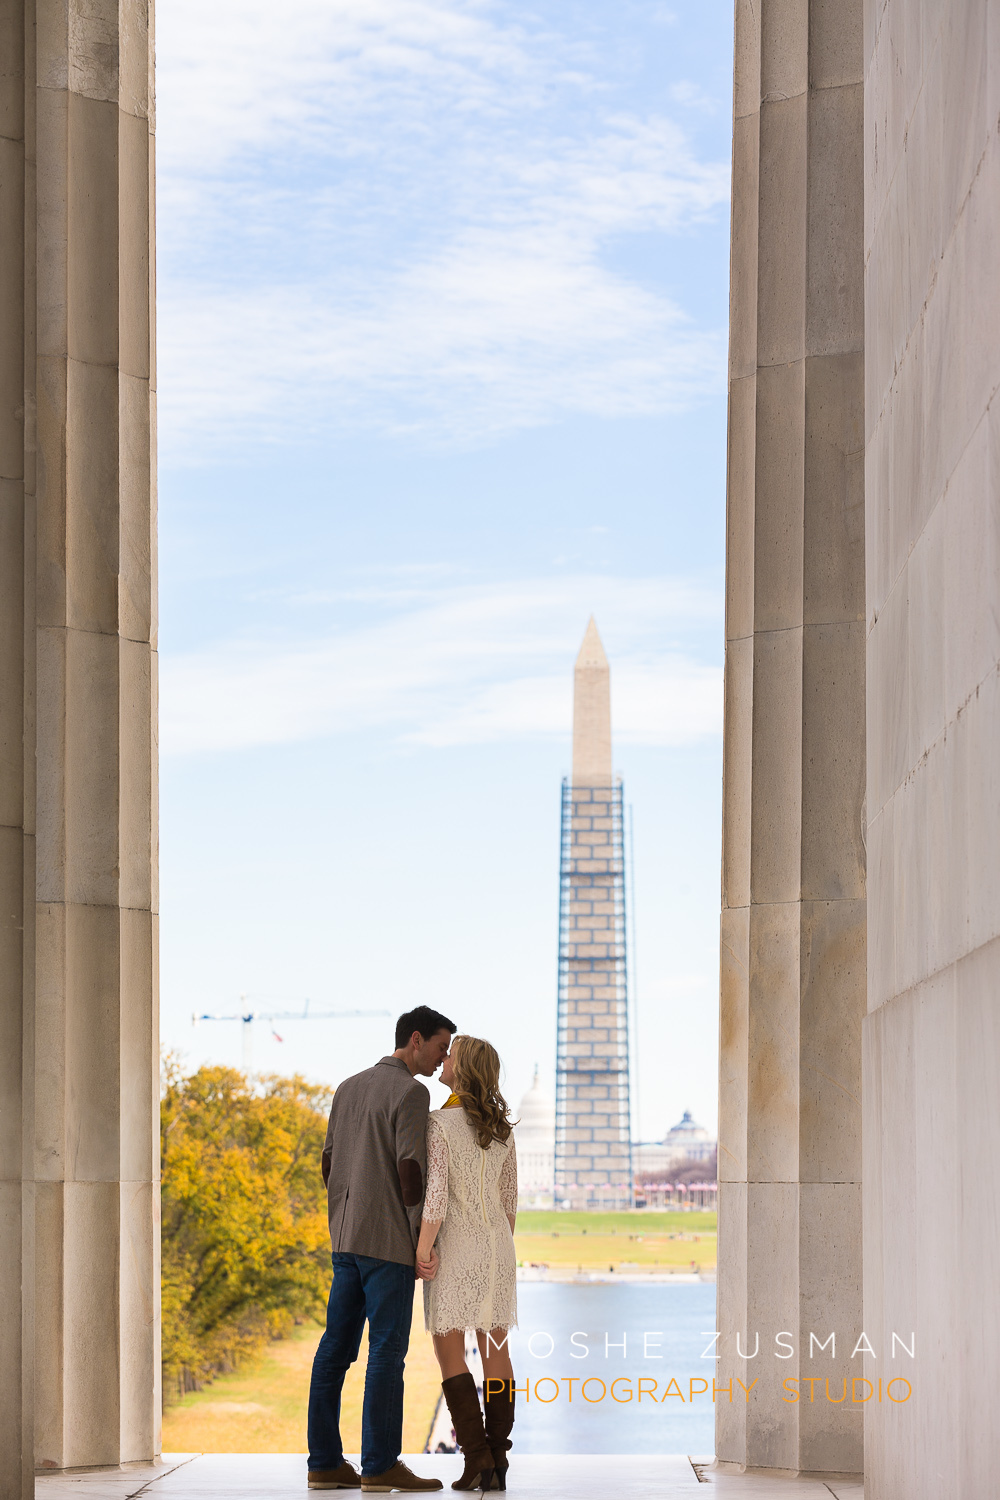 Engagement-Photographer-Washington-DC-Moshe-Zusman-Lauren-and-Tyler-03.jpg